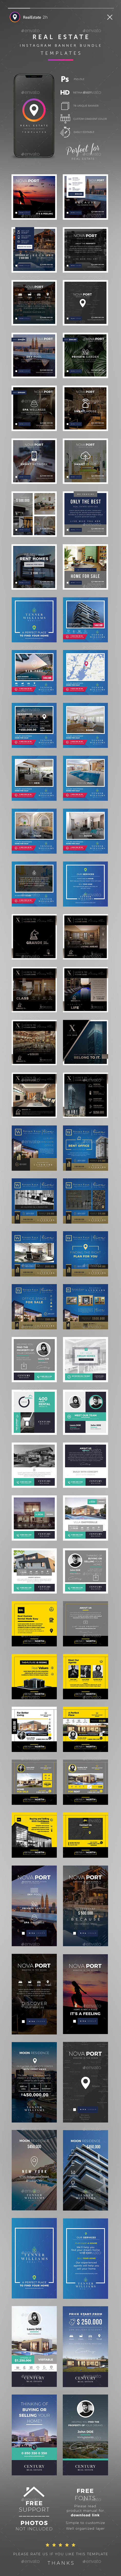 Real Estate Instagram Banner and Story Bundle Templates - Social Media Web Elements